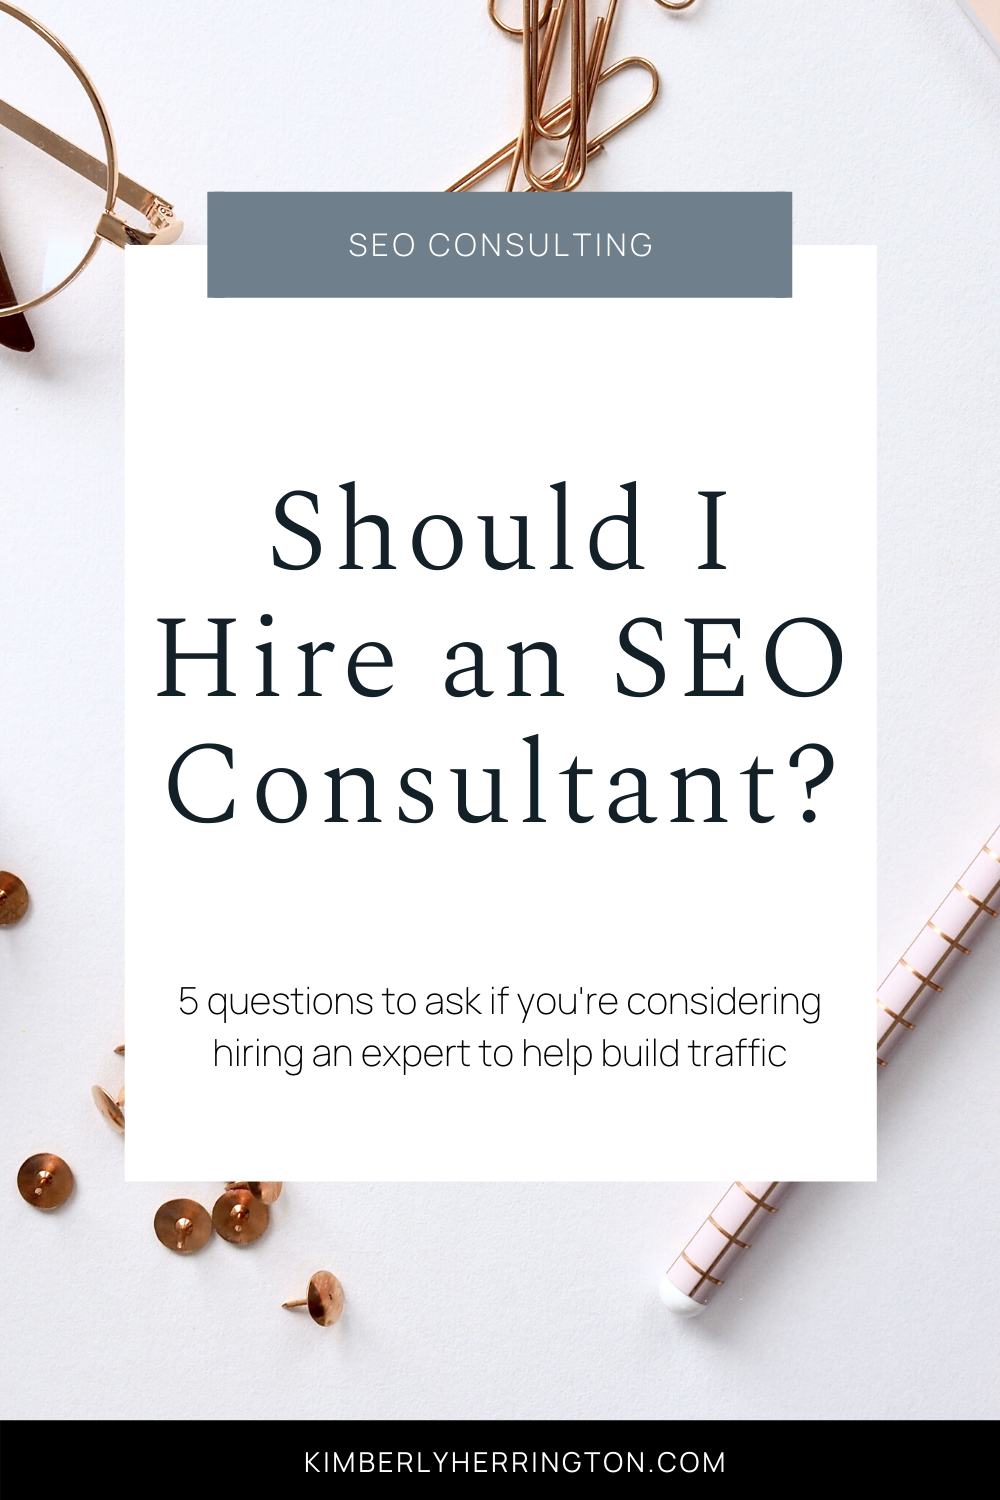 Advice for hiring an SEO Consultant